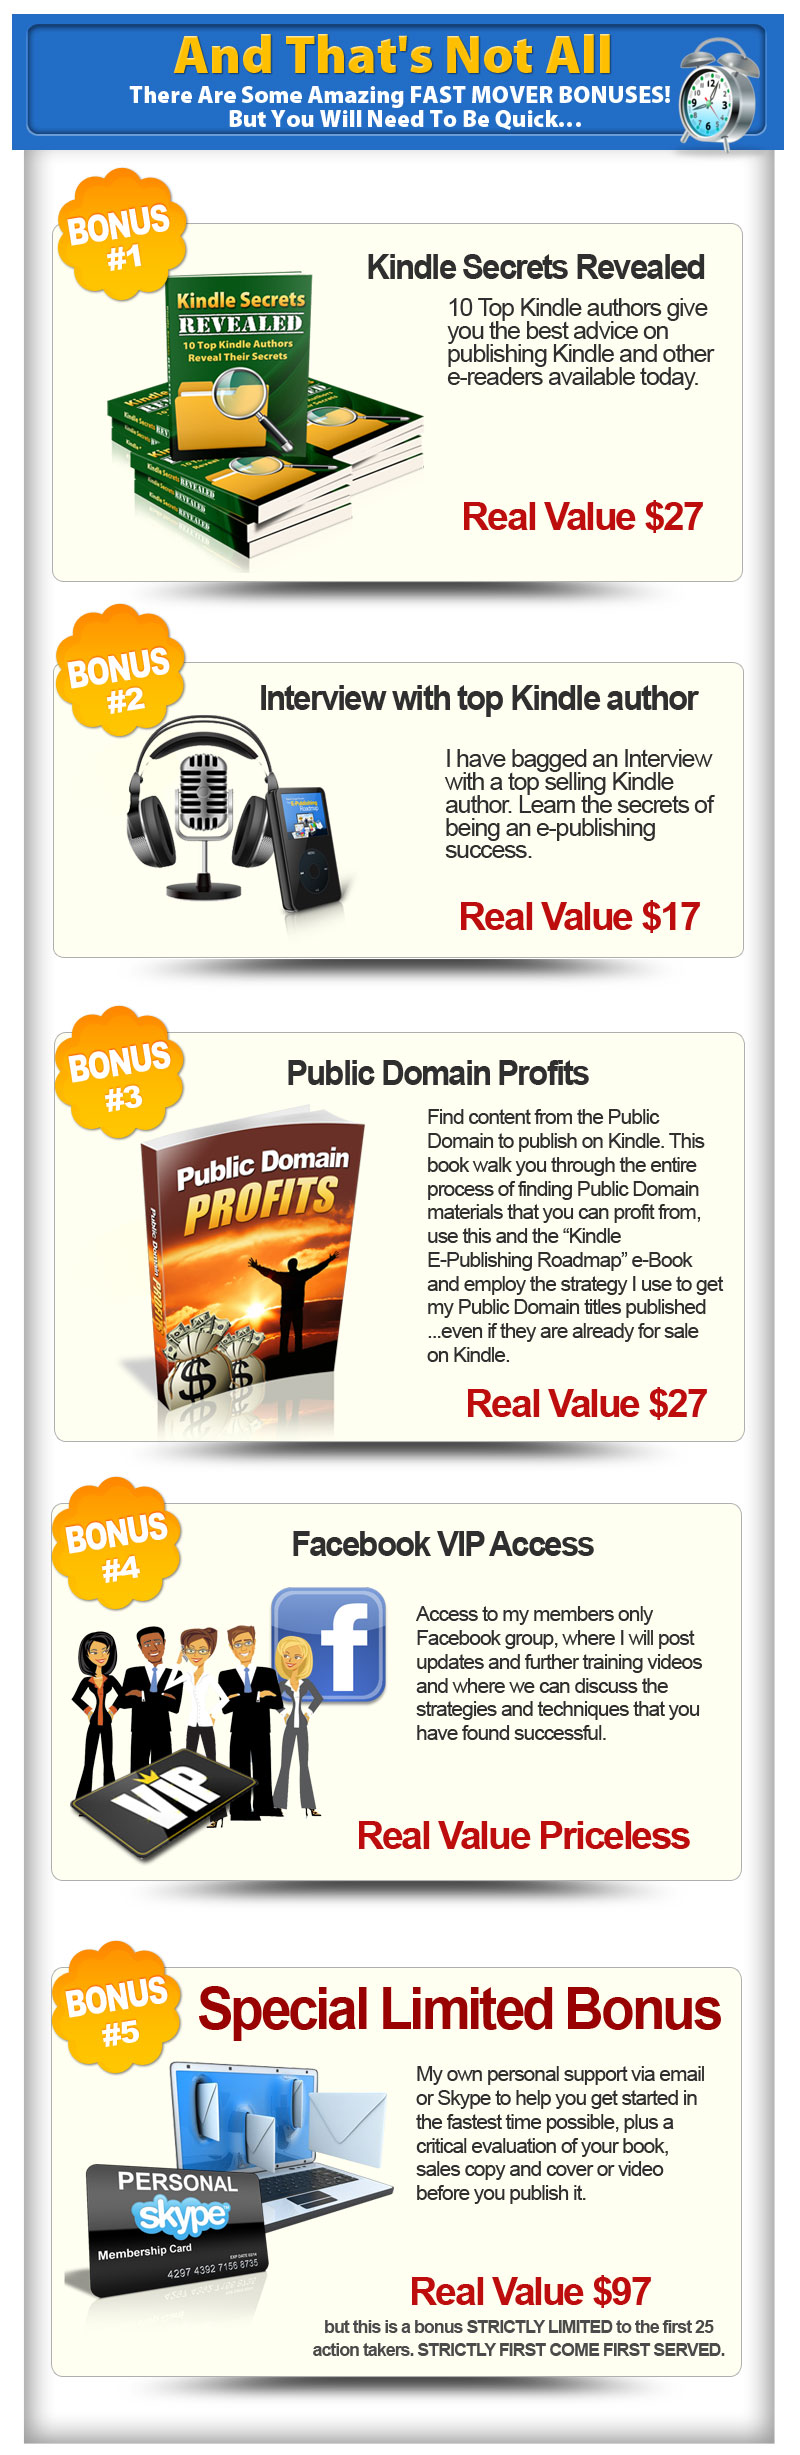 main e publishing roadmap imagine the thrill of that first as a published author and the satisfaction of knowing that you will make money from that book and all your others